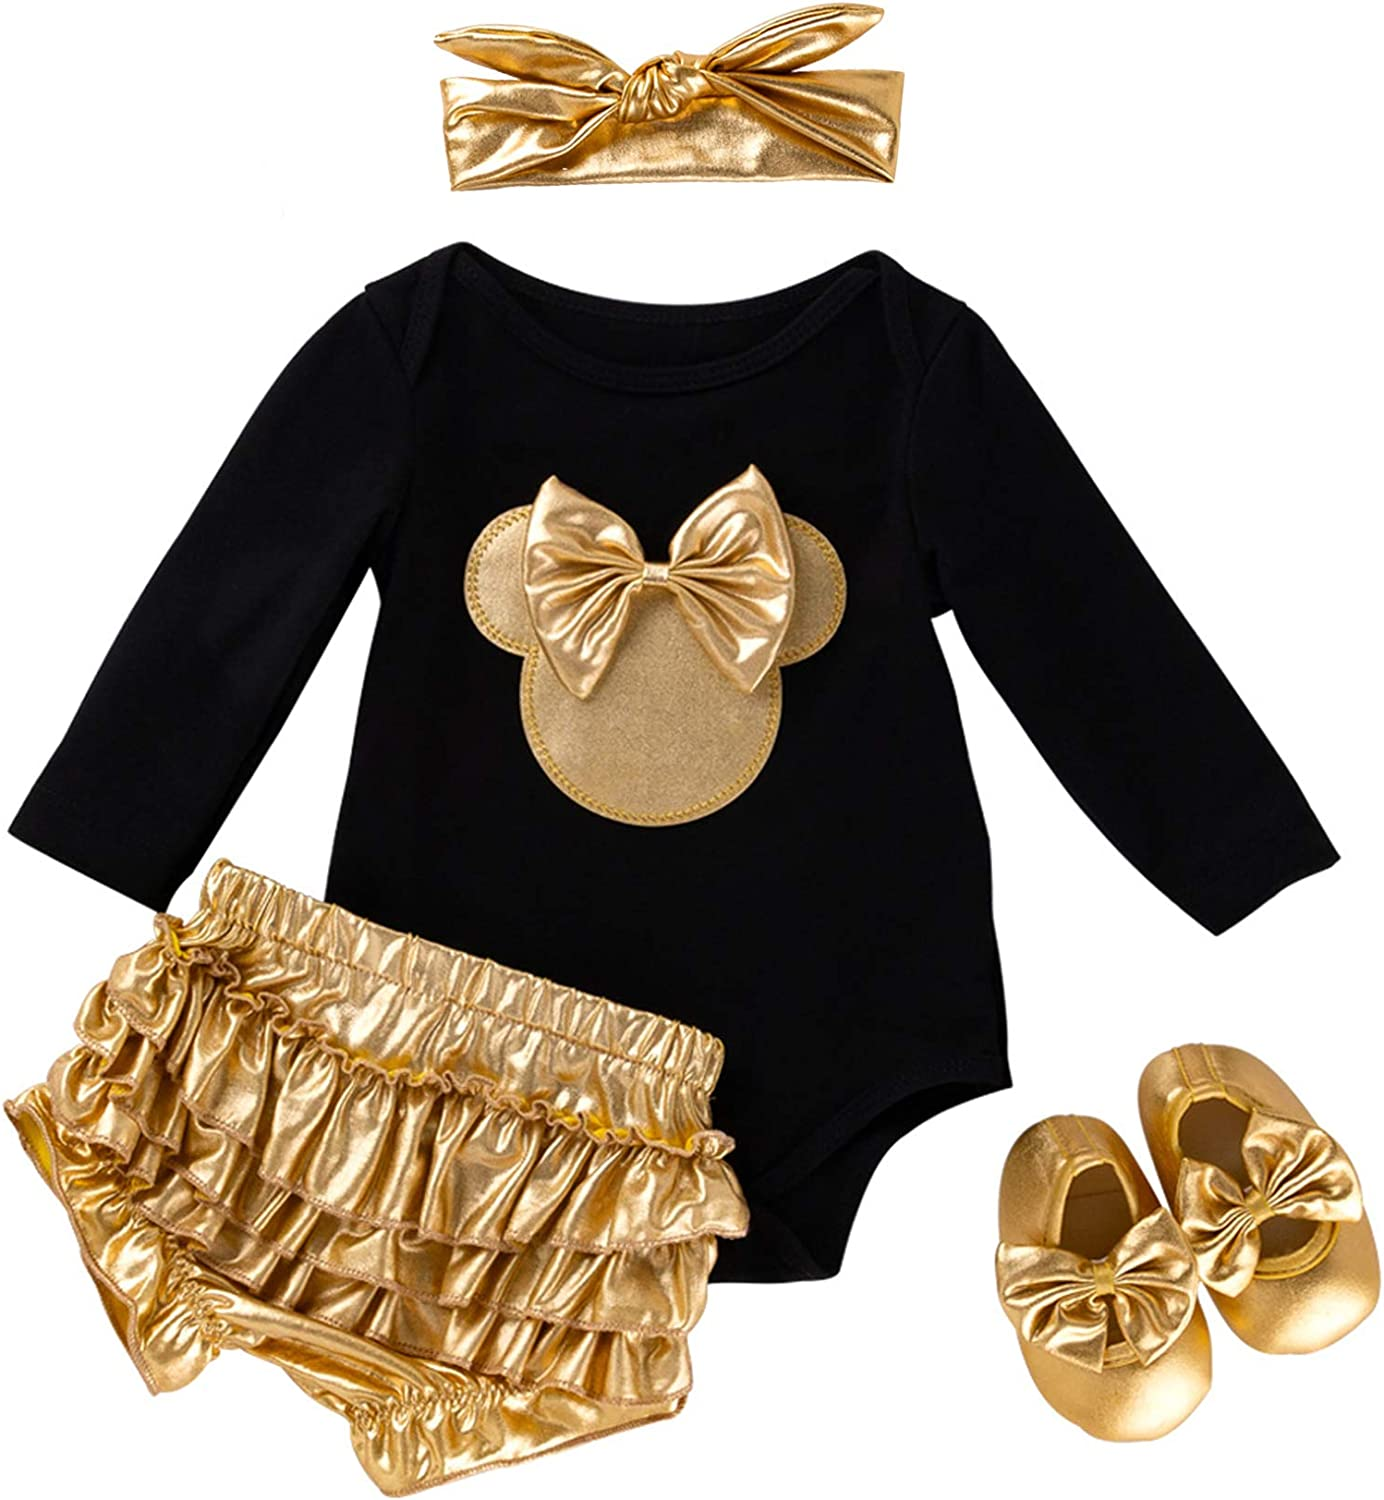 Cotrio Newborn Baby Girls Outfits Infant Floral Romper Clothes Bloomer Shorts